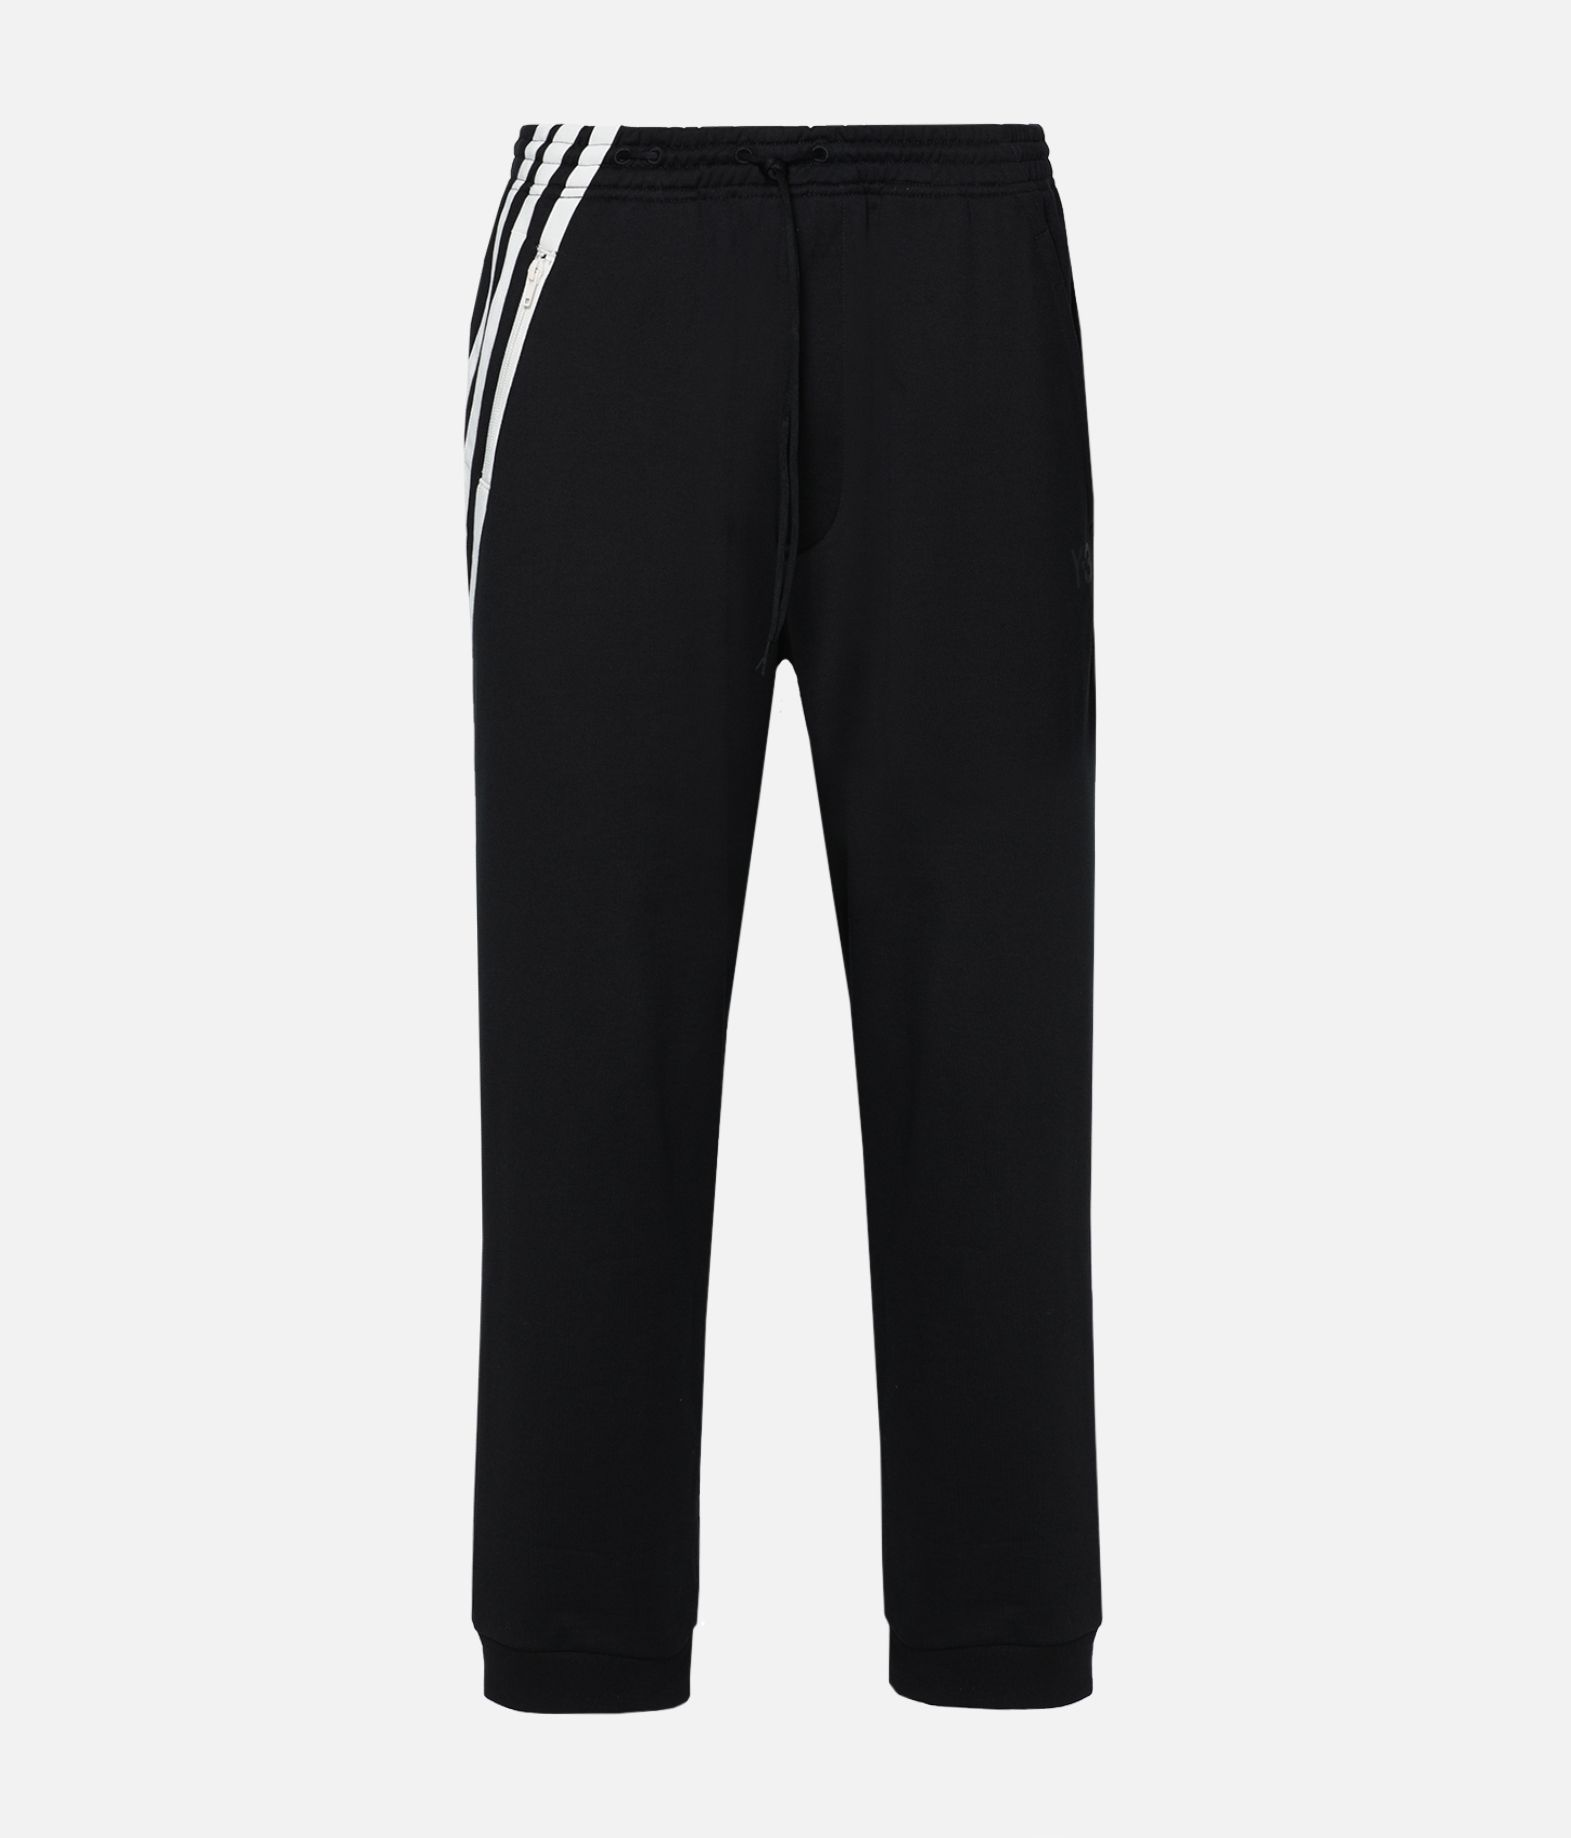 Y-3 Y-3 3-Stripes Cuff Pants Casual trouser Man f